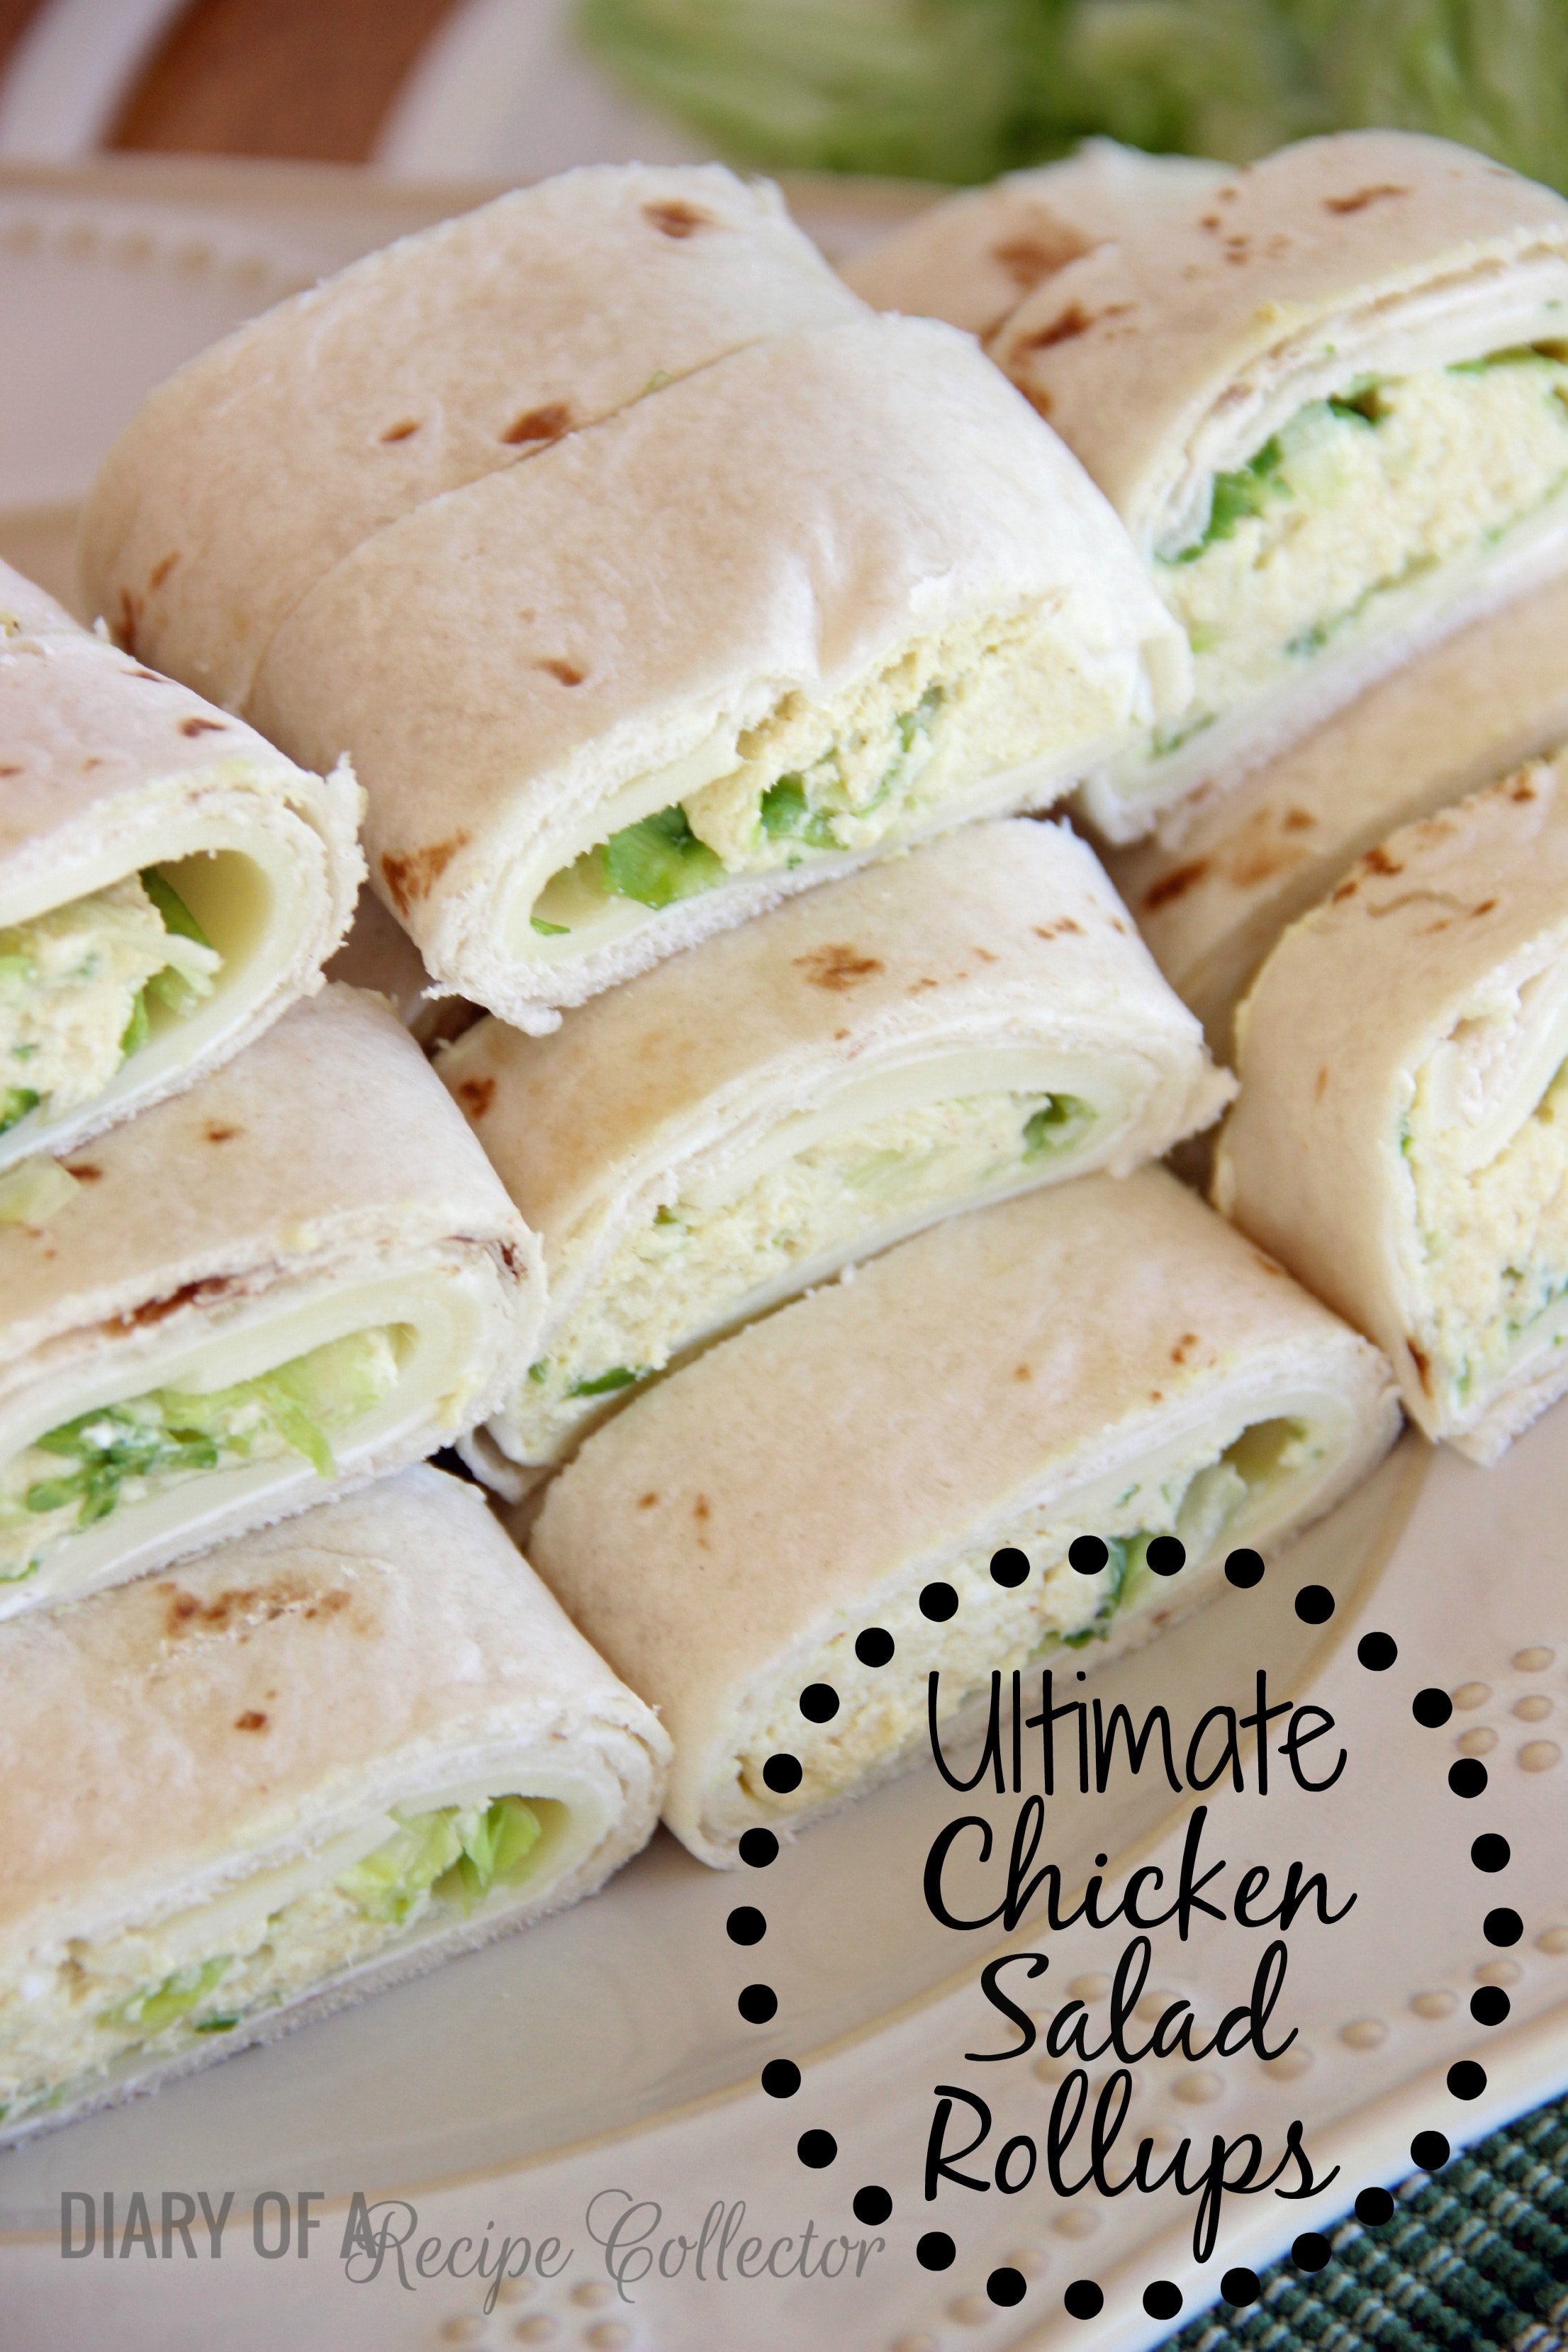 Ultimate chicken salad pinwheels diary of a recipe collector ultimate chicken salad rollups forumfinder Choice Image